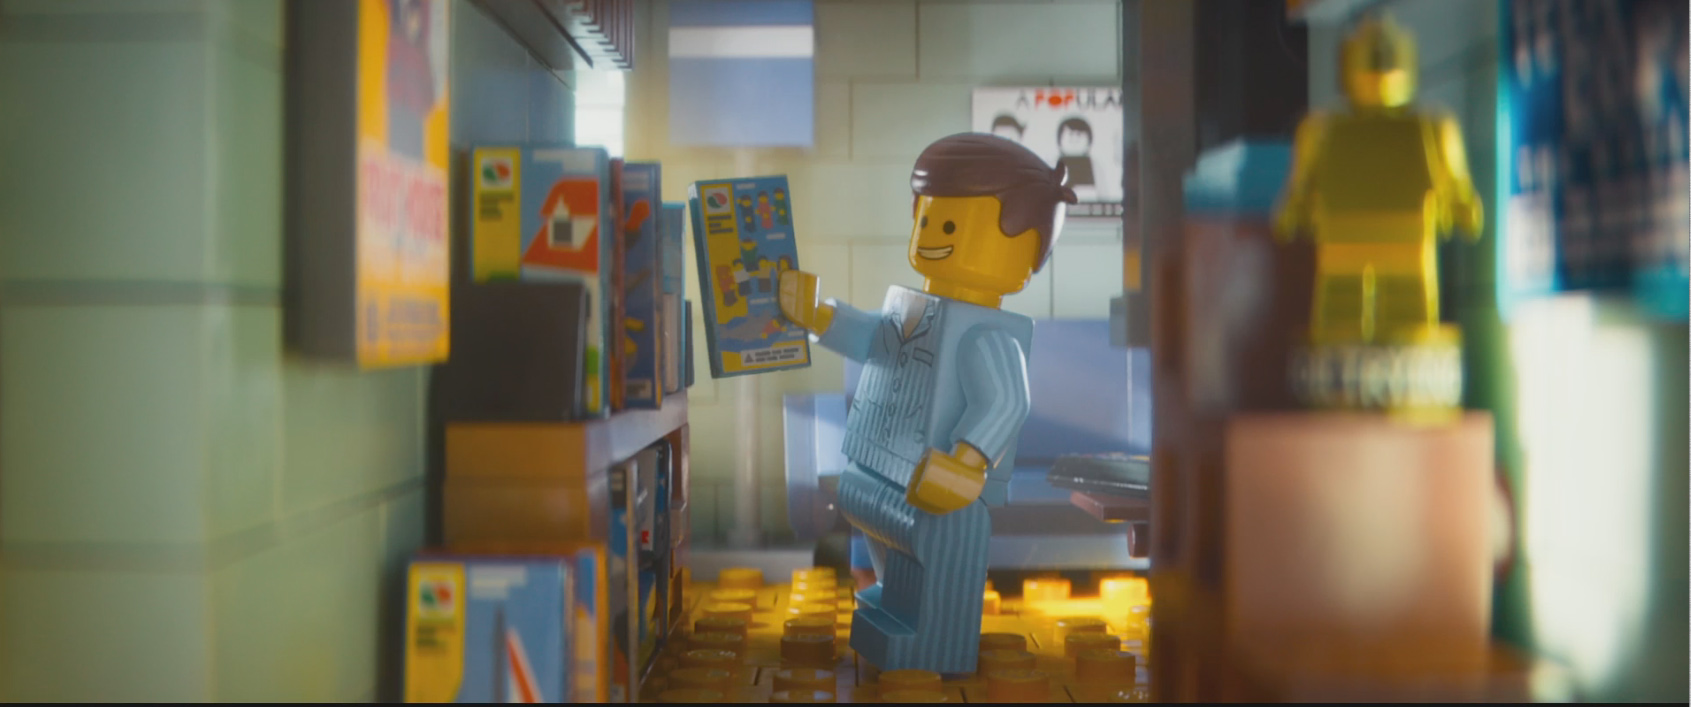 The Lego Movie Nadia Attlee